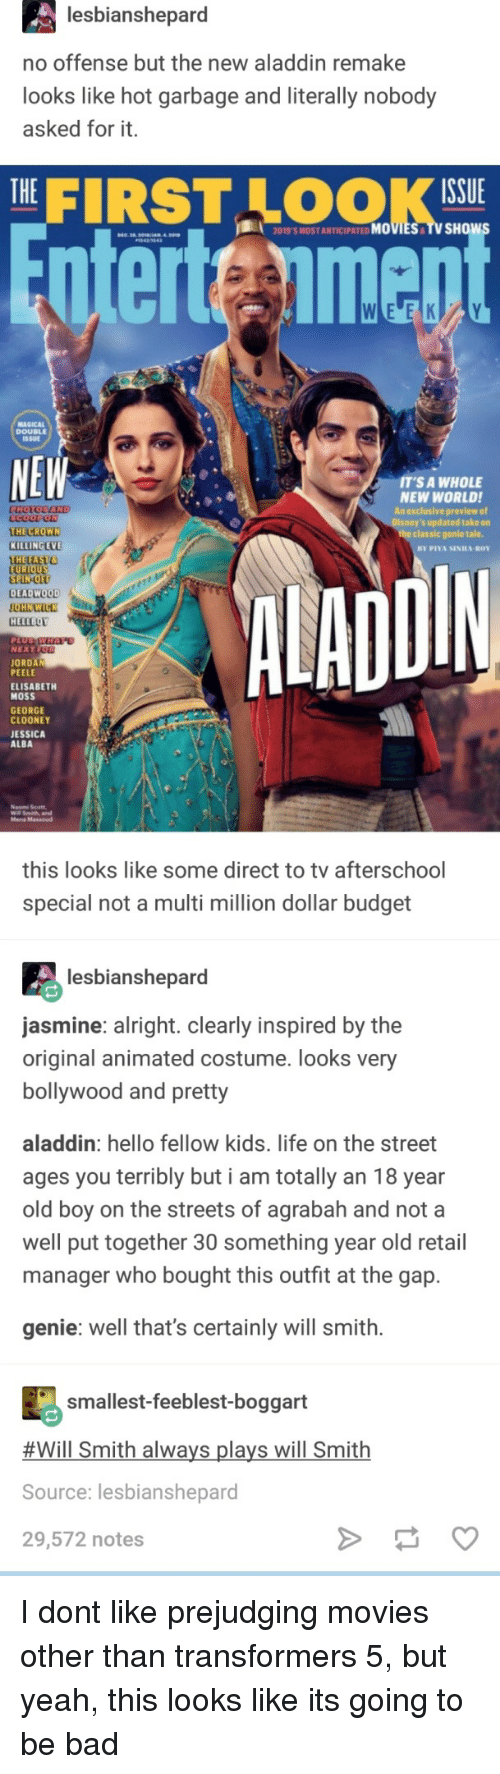 Elisabeth: lesbianshepard  no offense but the new aladdin remake  looks like hot garbage and literally nobody  asked for it.  THE|  FIRST LOOK  ISSUE  2019'S MOST ANTICIPATED MOVIES TV SHOw  nterteimen  MAGICAL  DOUBLEE  SSUE  NEW  T'S A WHOLE  NEW WORLDI  An exclusive preview of  s updated take on  THE CROWN  KILLING EVE  THETAST  the classic genle tale.  DIN  EU  SPIN-O  DEADWOOD  HELLBOY  NEXT  JORDAN  PEELE  ELISABETH  MOSS  GEORGE  CLOONEY  JESSICA  ALBA  Mena Massoud  this looks like some direct to tv afterschool  special not a multi million dollar budget  lesbianshepard  asmine: alright. clearly inspired by the  original animated costume. looks very  bollywood and pretty  aladdin: hello fellow kids. life on the street  ages you terribly but i am totally an 18 year  old boy on the streets of agrabah and not a  well put together 30 something year old retail  manager who bought this outfit at the gap.  genie: well that's certainly will smith.  smallest-feeblest-boggart  #Will Smith always plays will Smith  Source: lesbianshepard  29,572 notes I dont like prejudging movies other than transformers 5, but yeah, this looks like its going to be bad